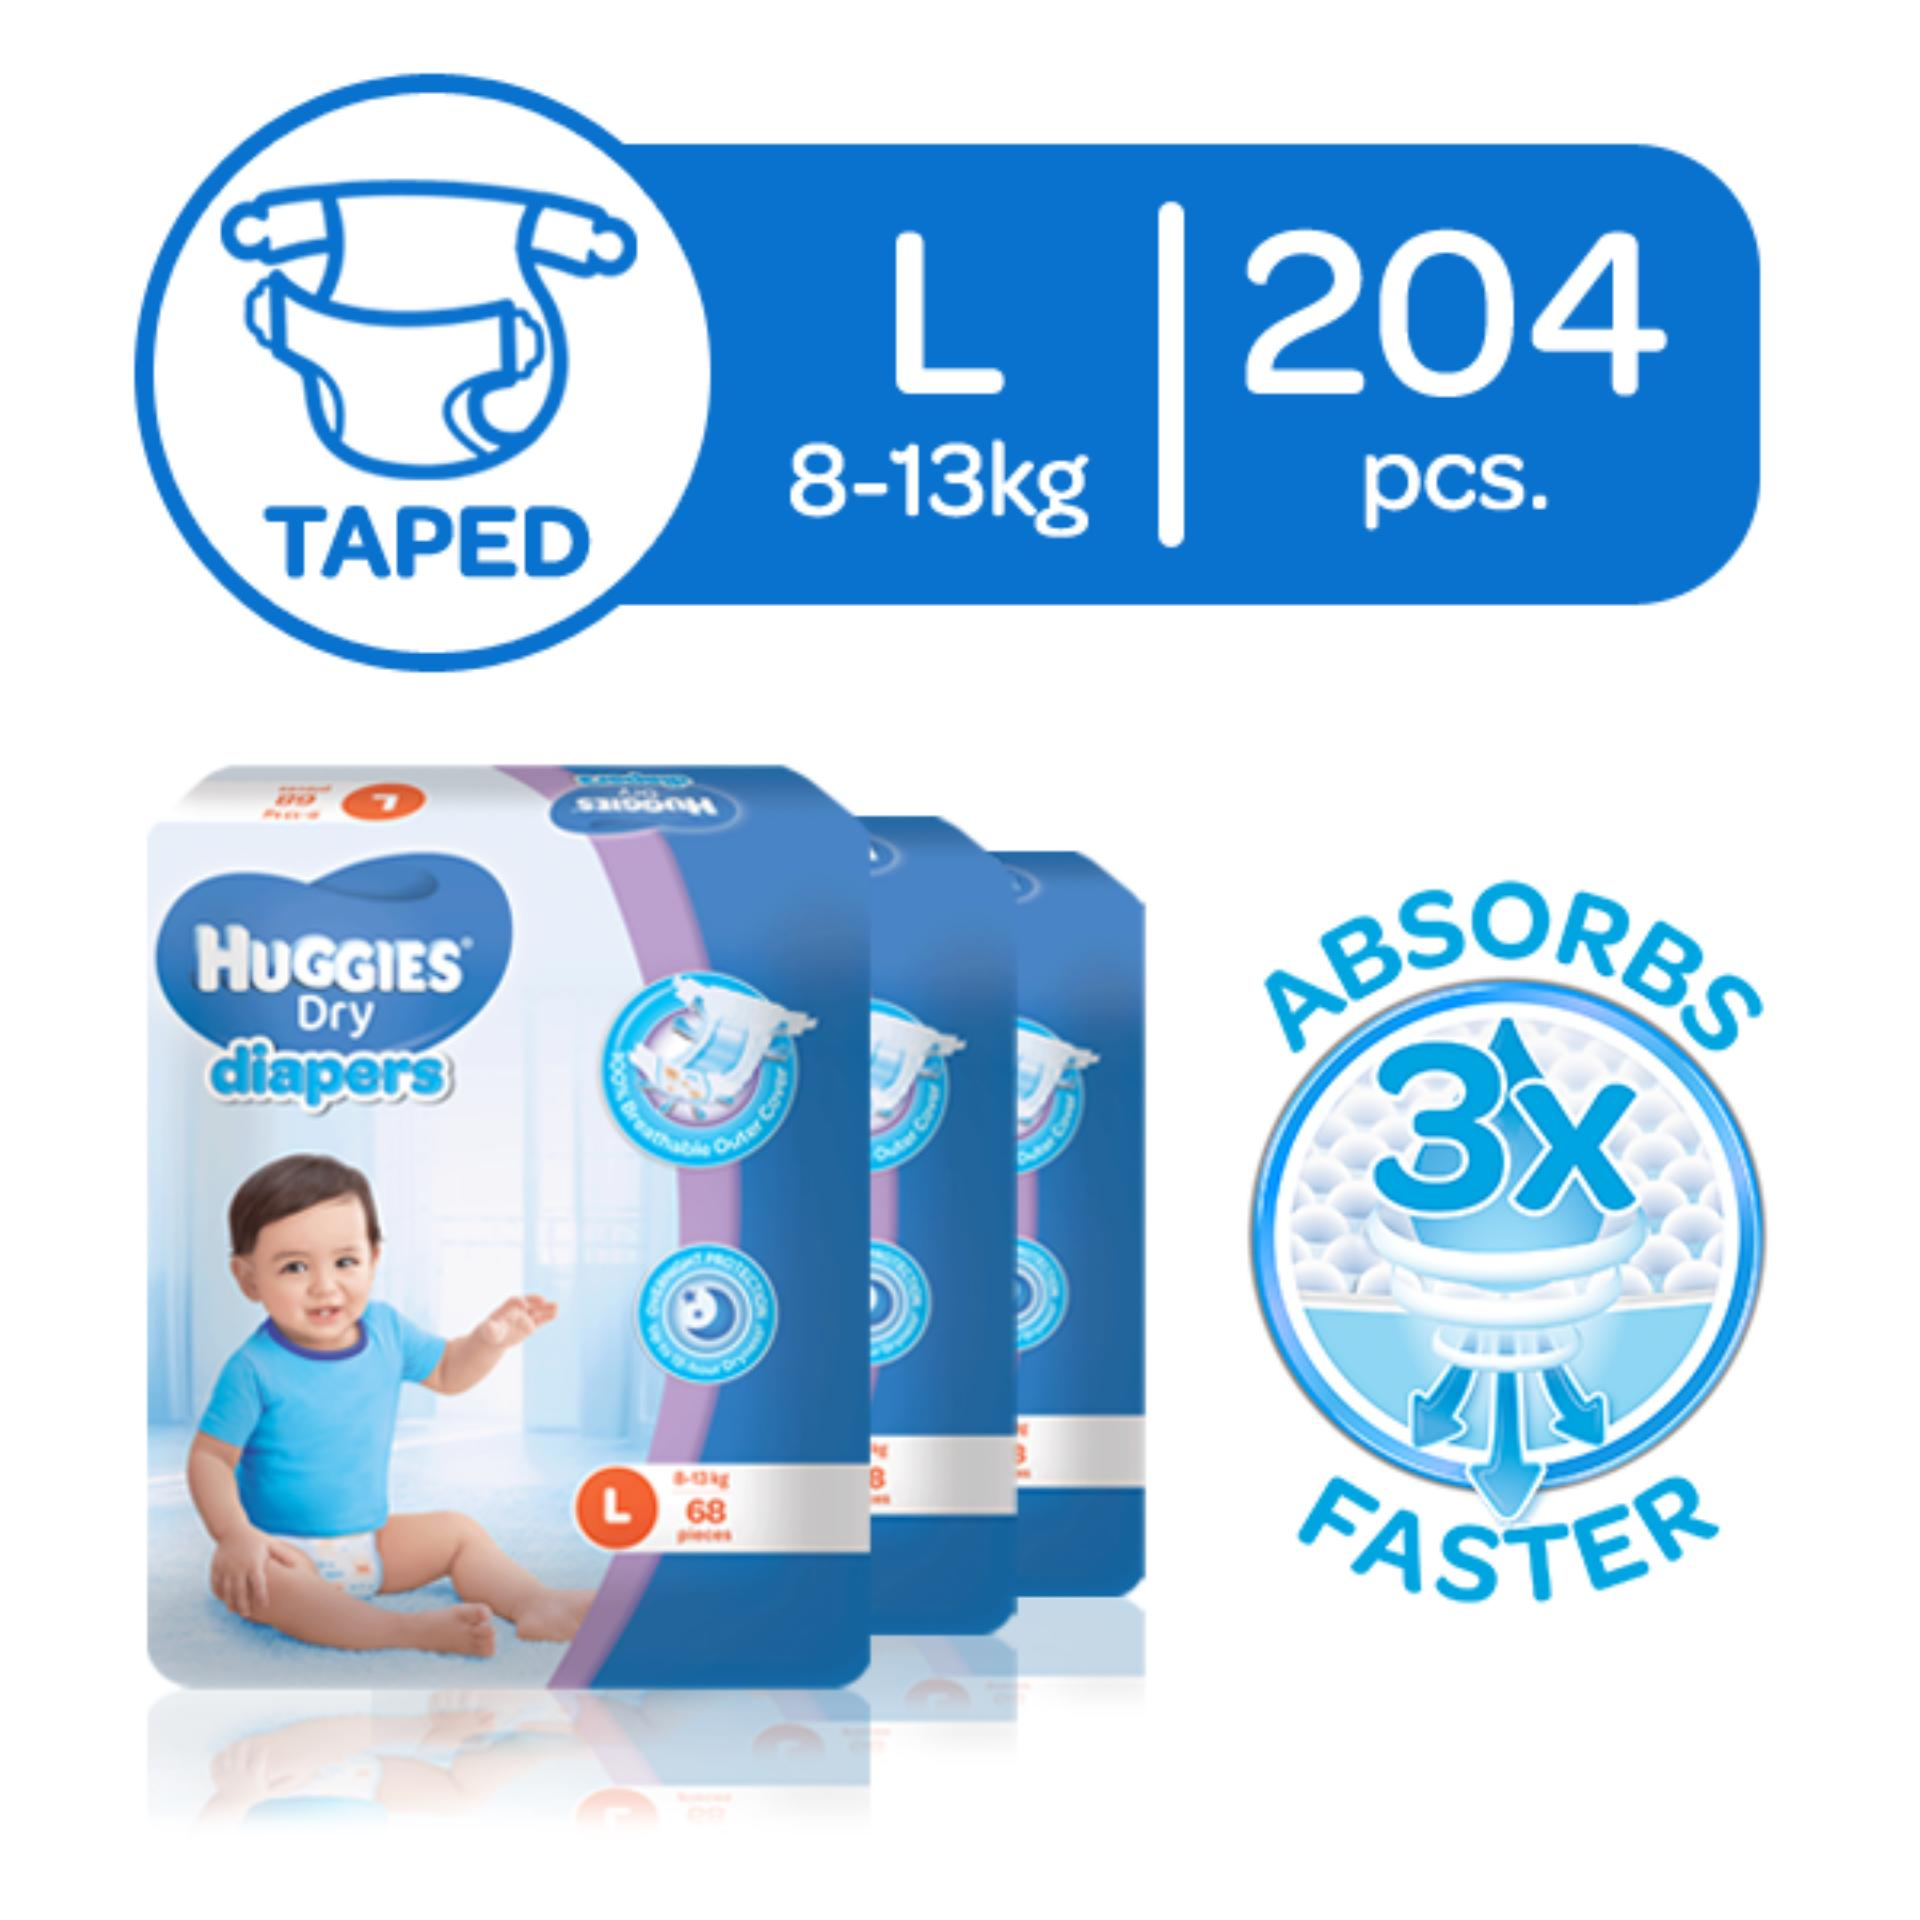 Disposable Diaper For Sale Nappies Online Brands Pampers Premium Care Tape Nb 52 Huggies Dry Large 8 14 Kg 68 Pcs X 3 Packs